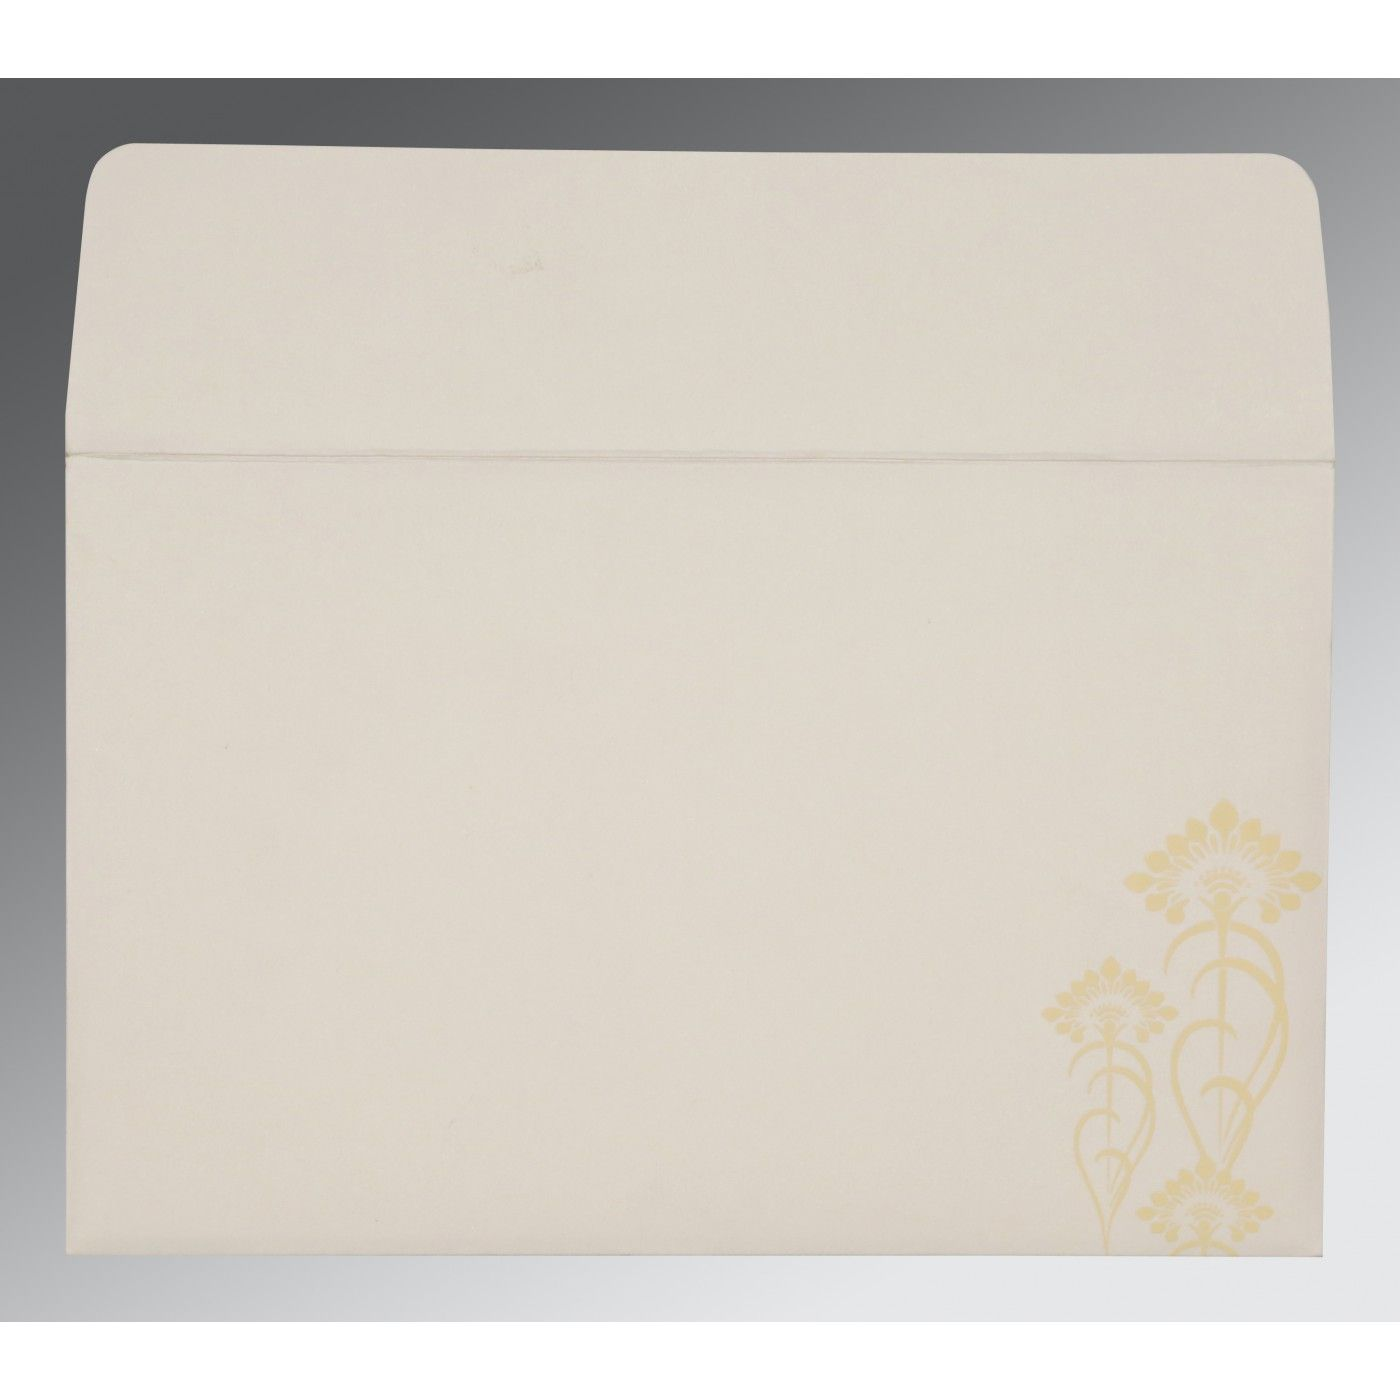 CREAM SHIMMERY SCREEN PRINTED WEDDING CARD : CD-8239I - IndianWeddingCards